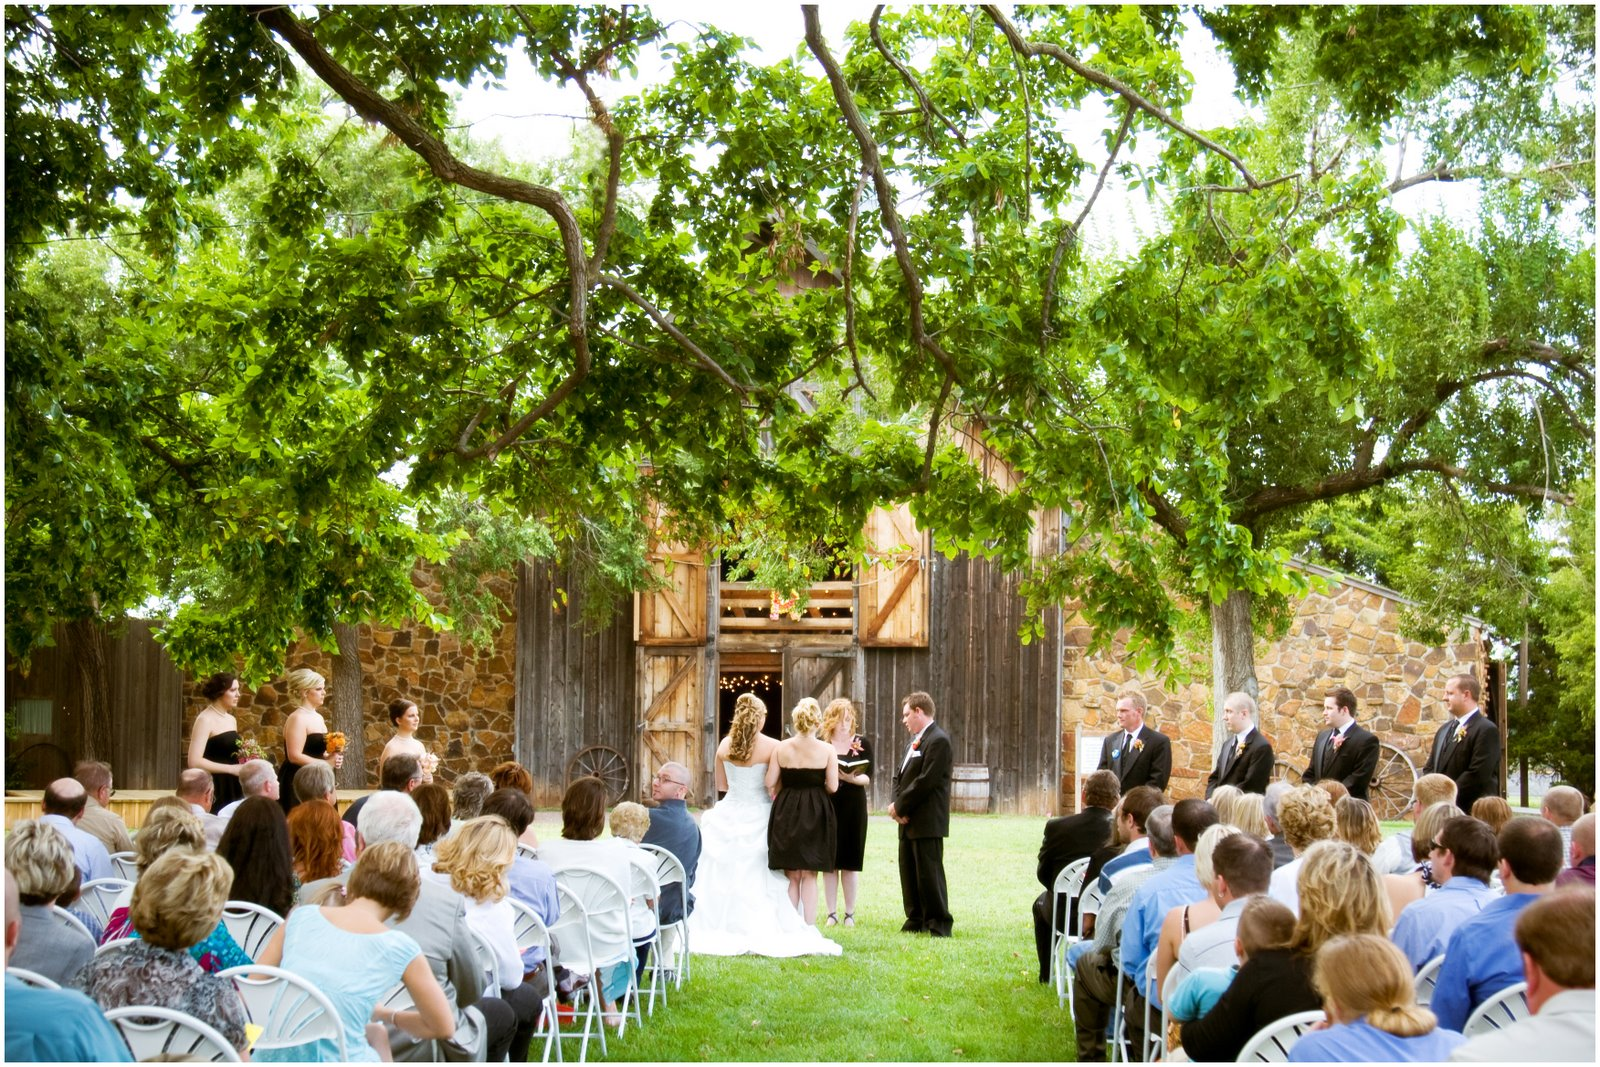 Find The Best Deals On Budget Wedding Venues With Oklahoma Weddings